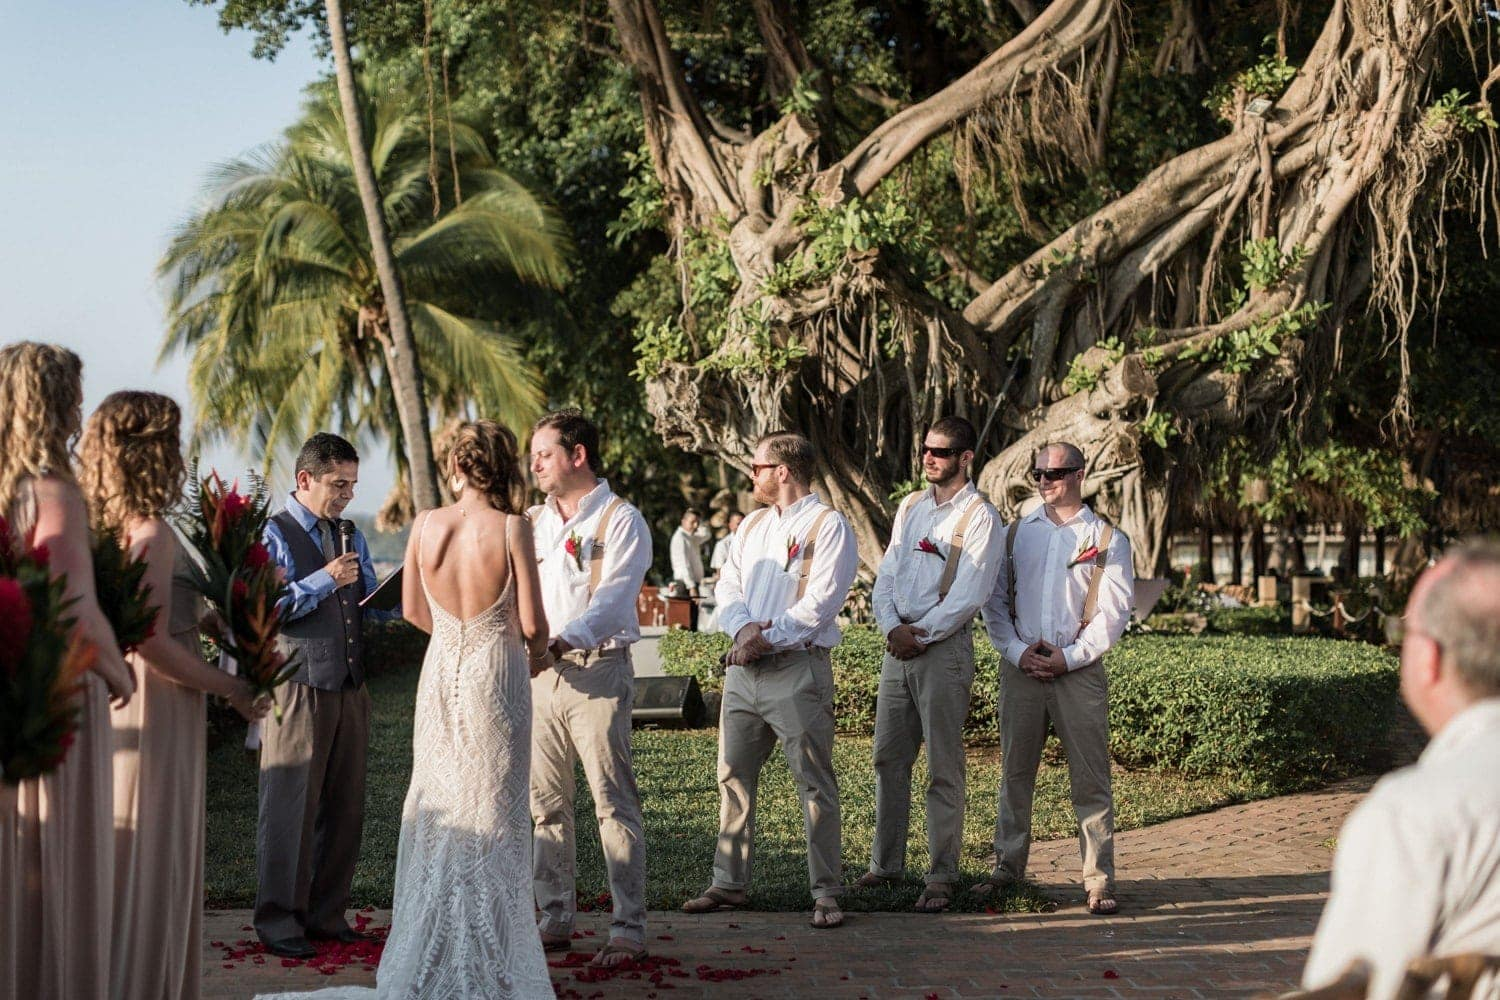 Great photo of couple getting married with bridesmaids and groomsmen on each side.